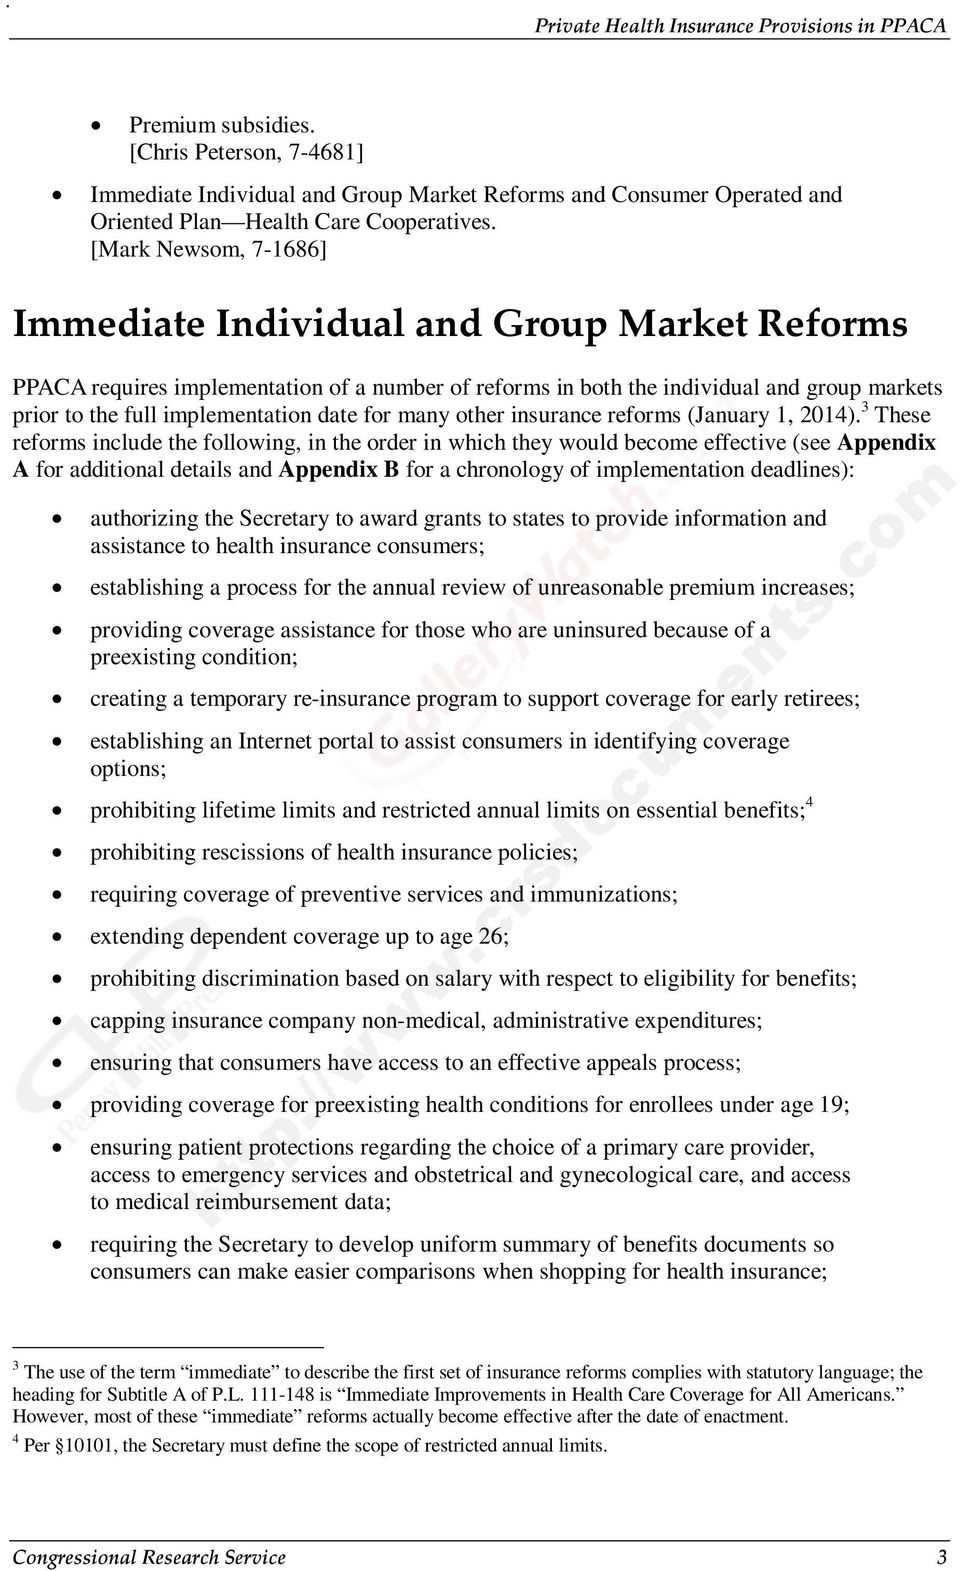 for many other insurance reforms (January 1, 2014).